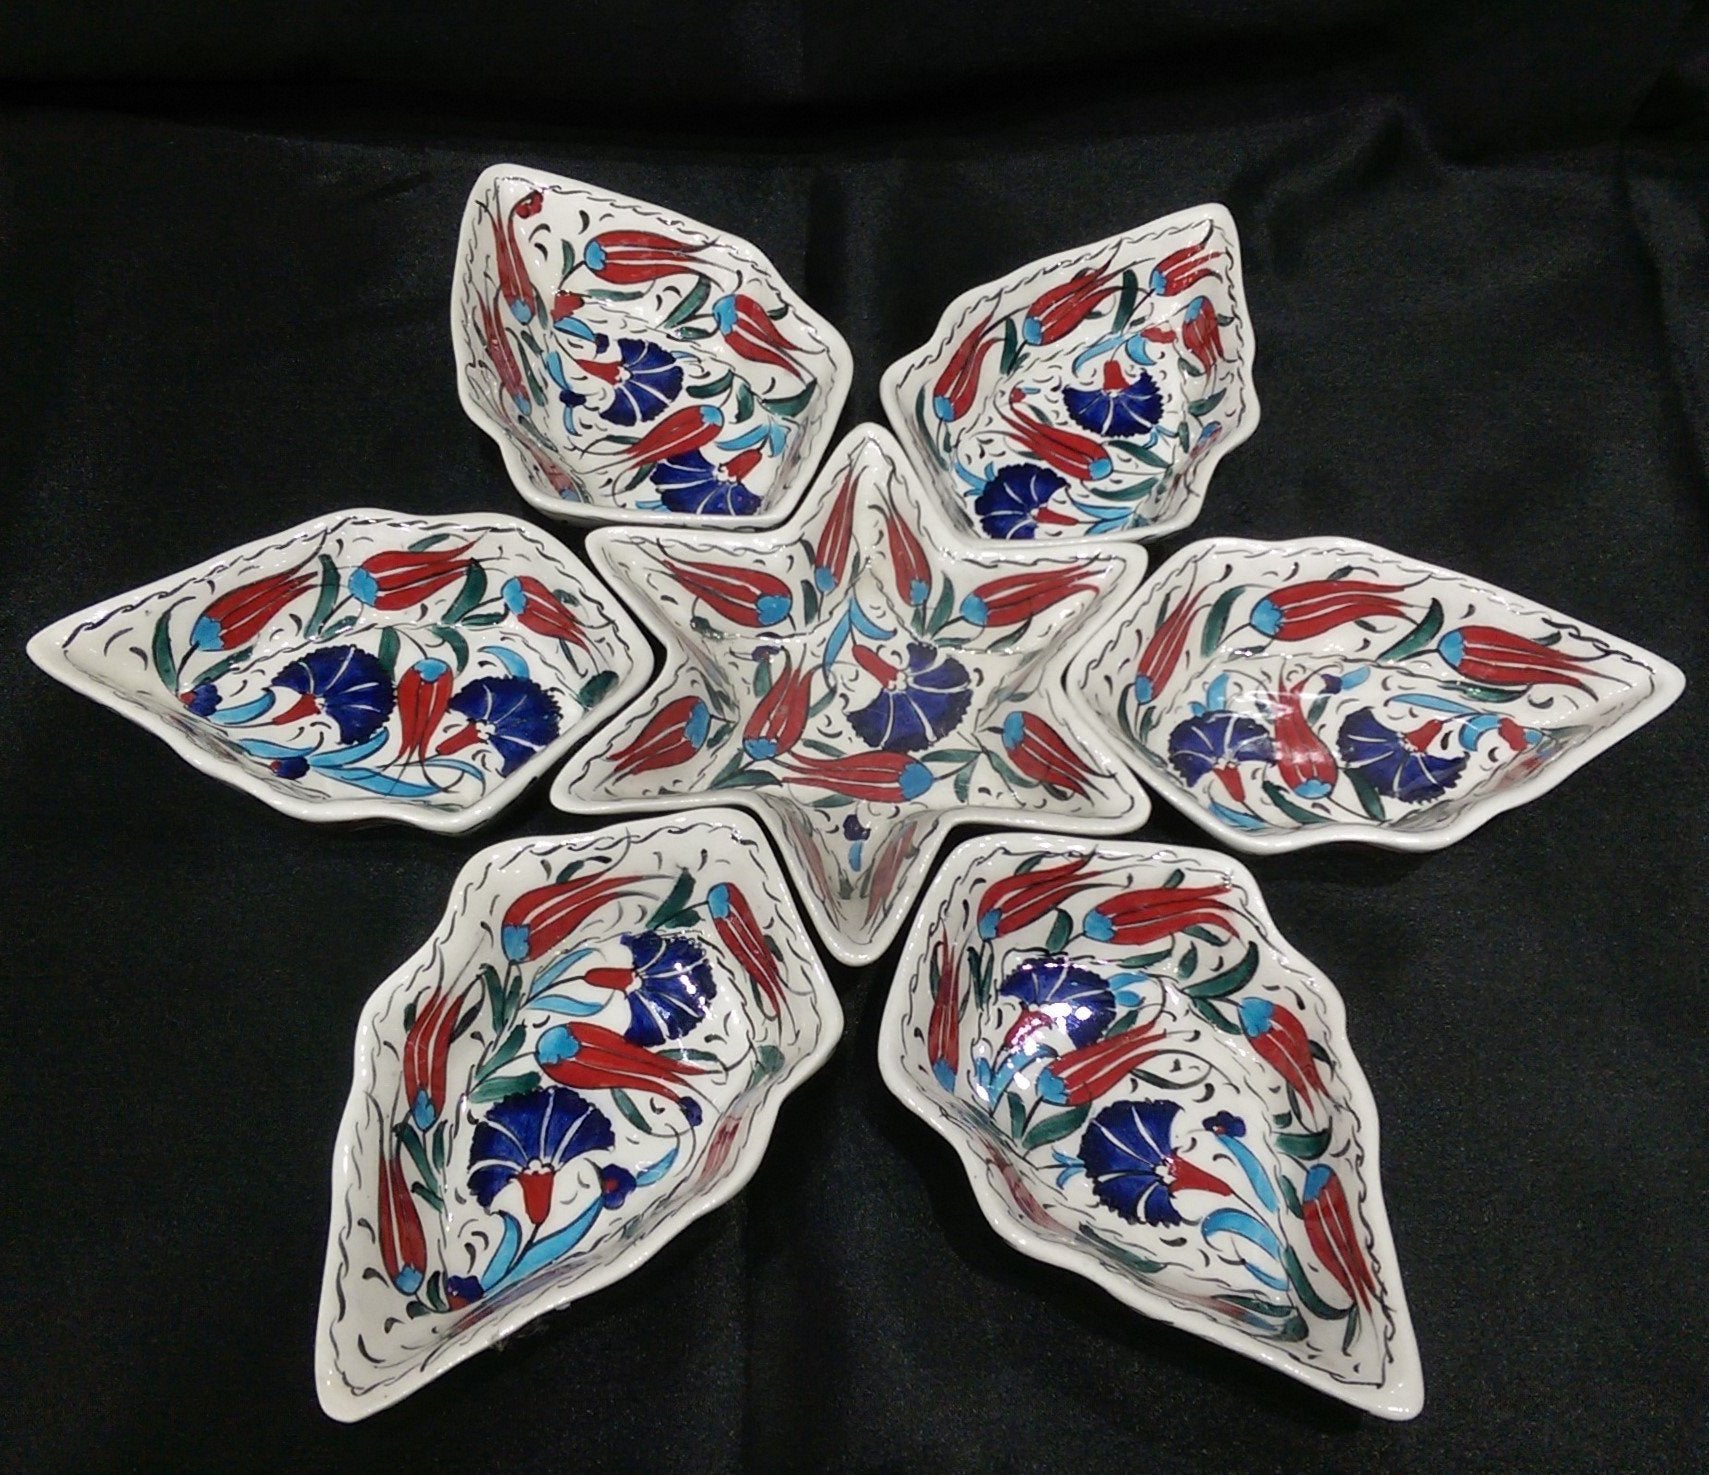 Ceramic Appetizer Dishes 007